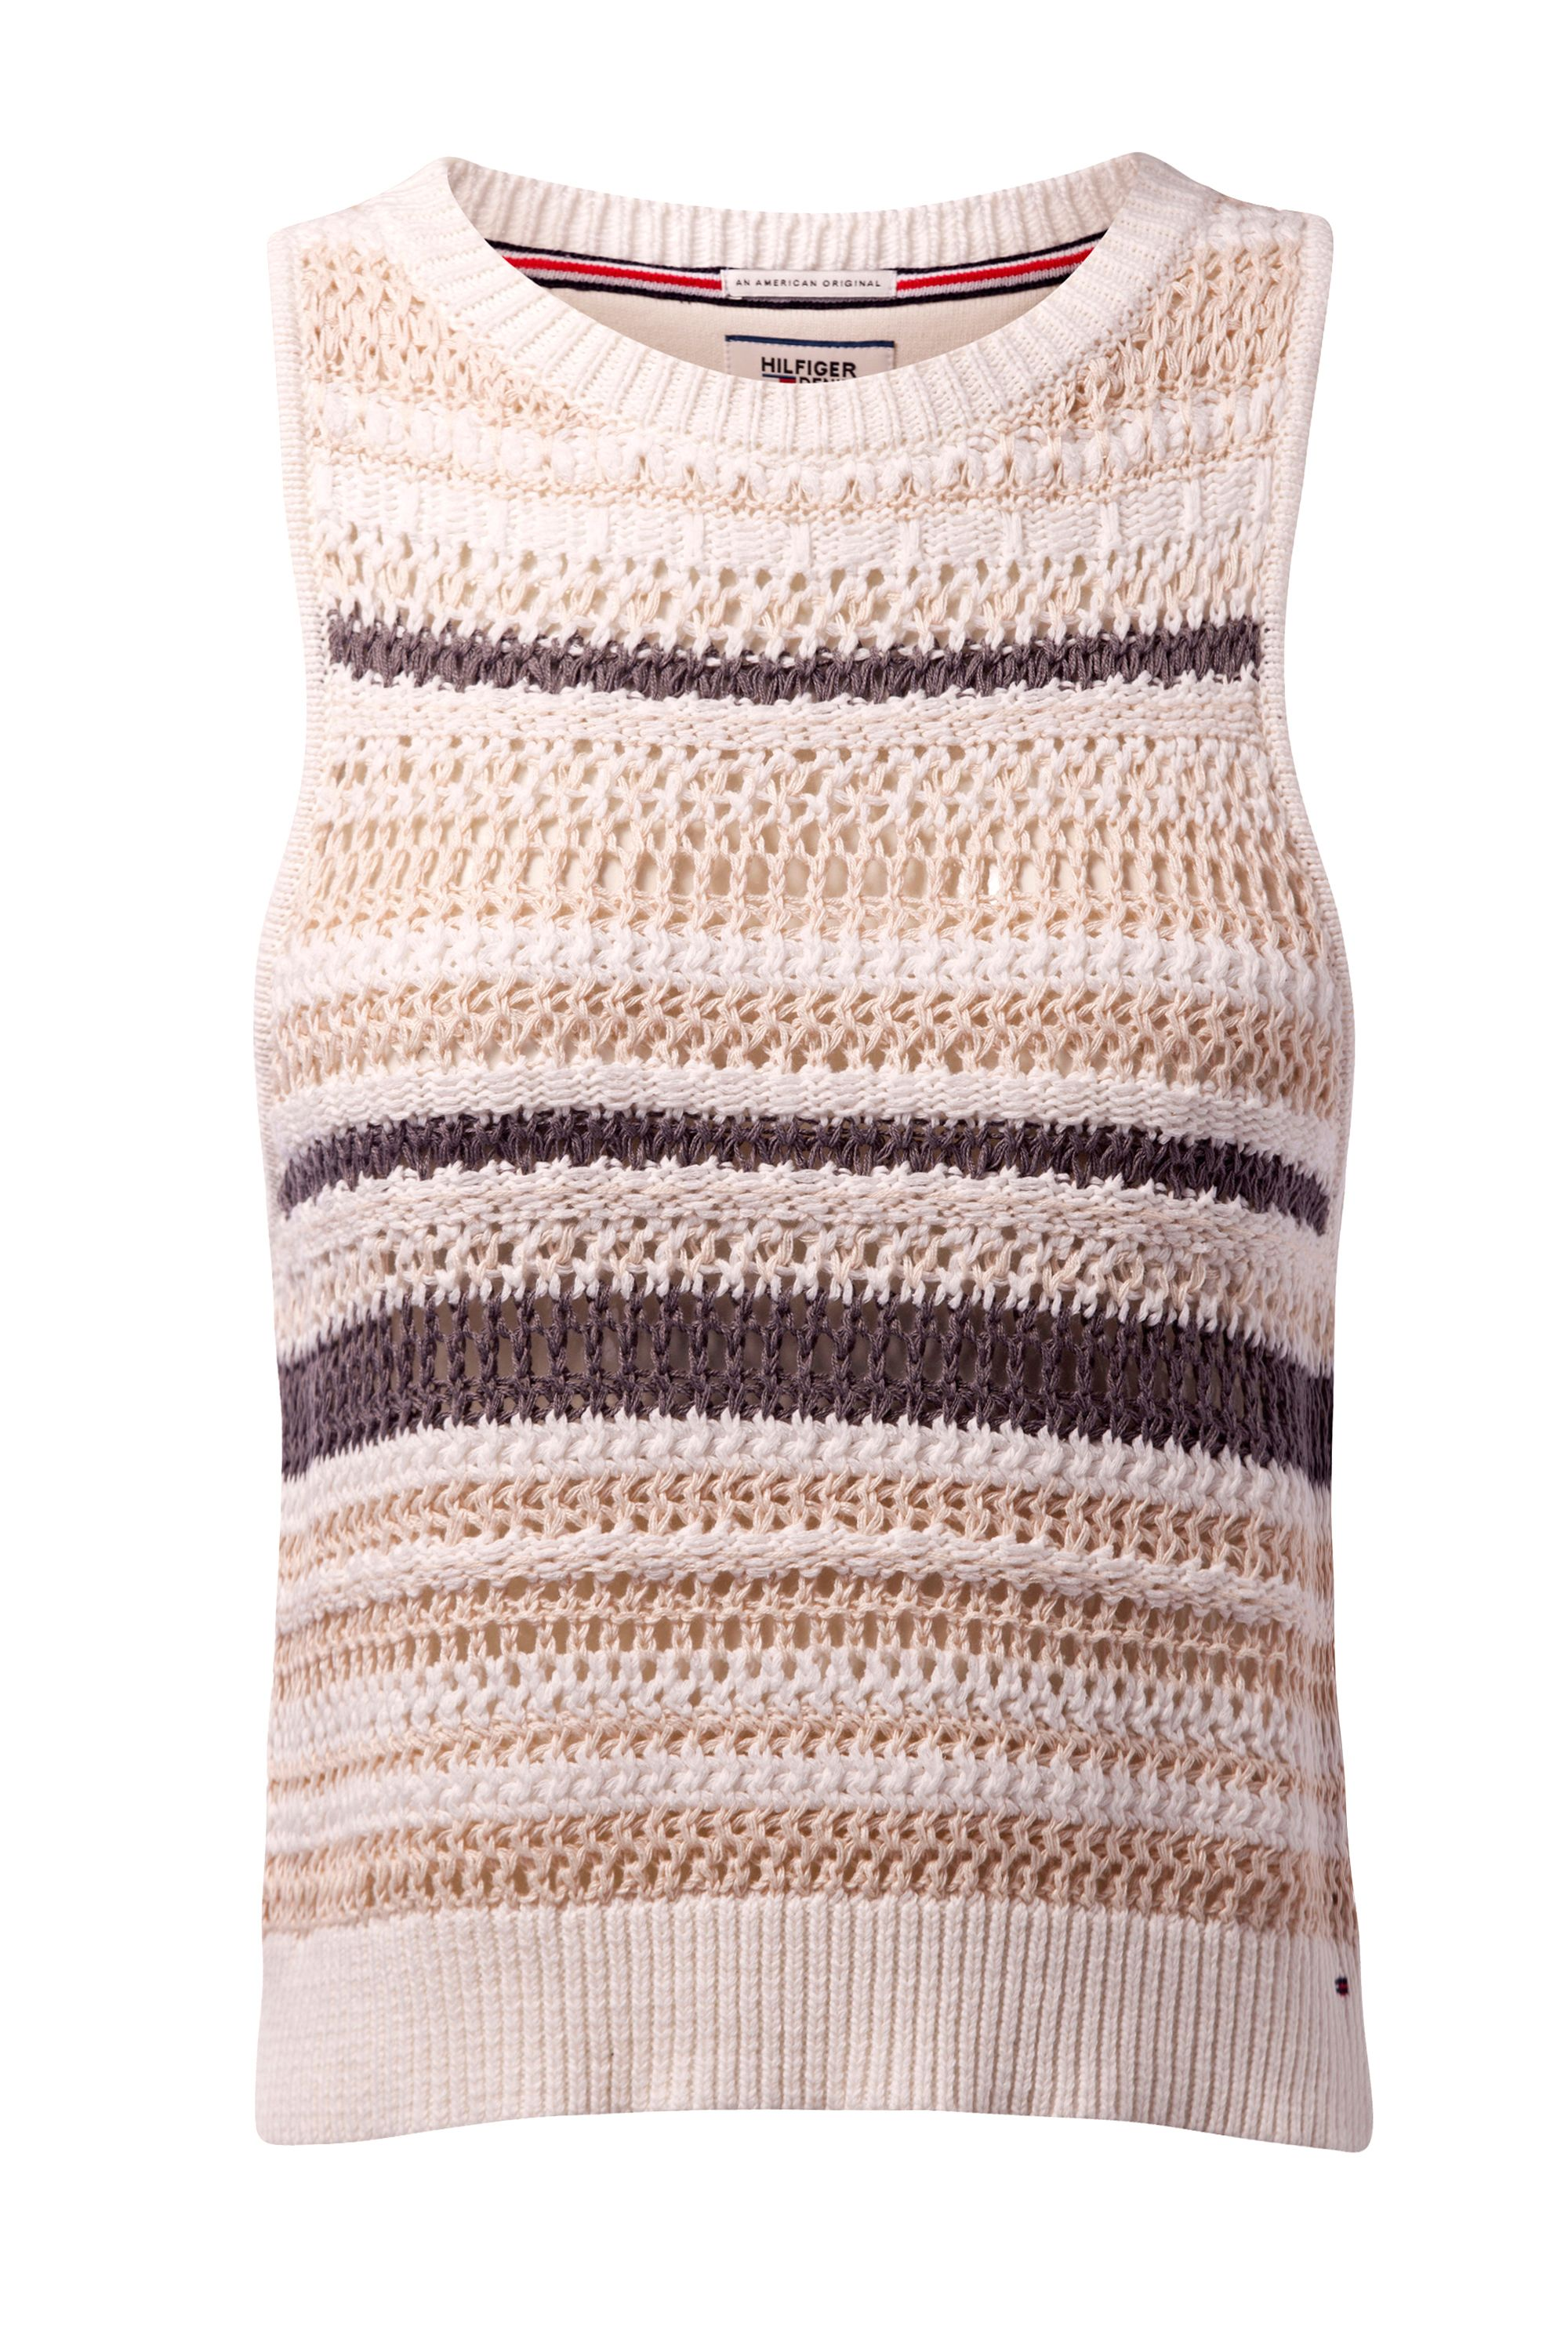 Tommy Hilfiger Knit Tank Top Cream